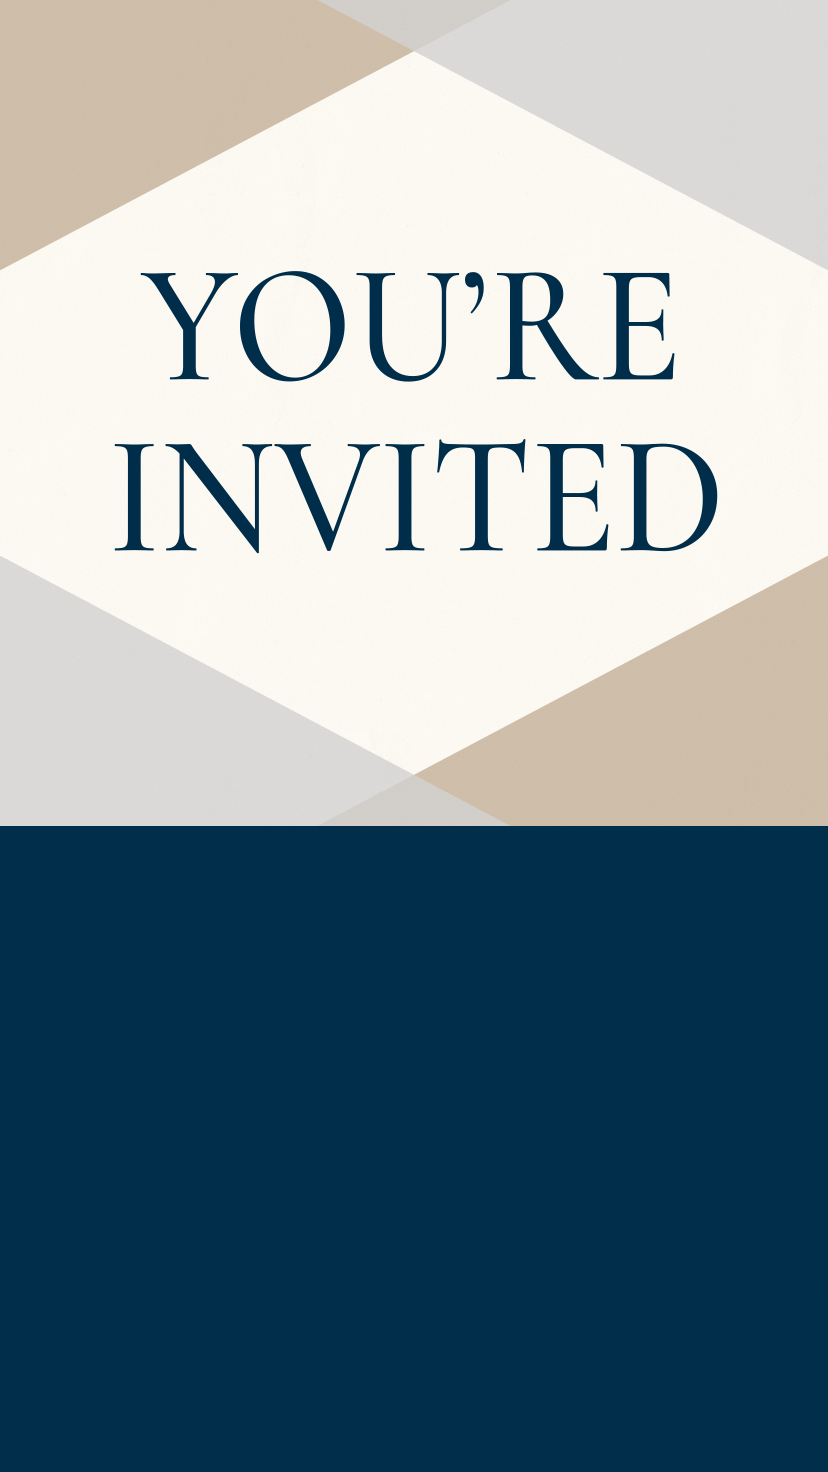 You Re Invited Get Set To Impress Colleagues And Clients With This Evite Premium Invitatio Free Party Invitation Templates Party Invite Template Youre Invited